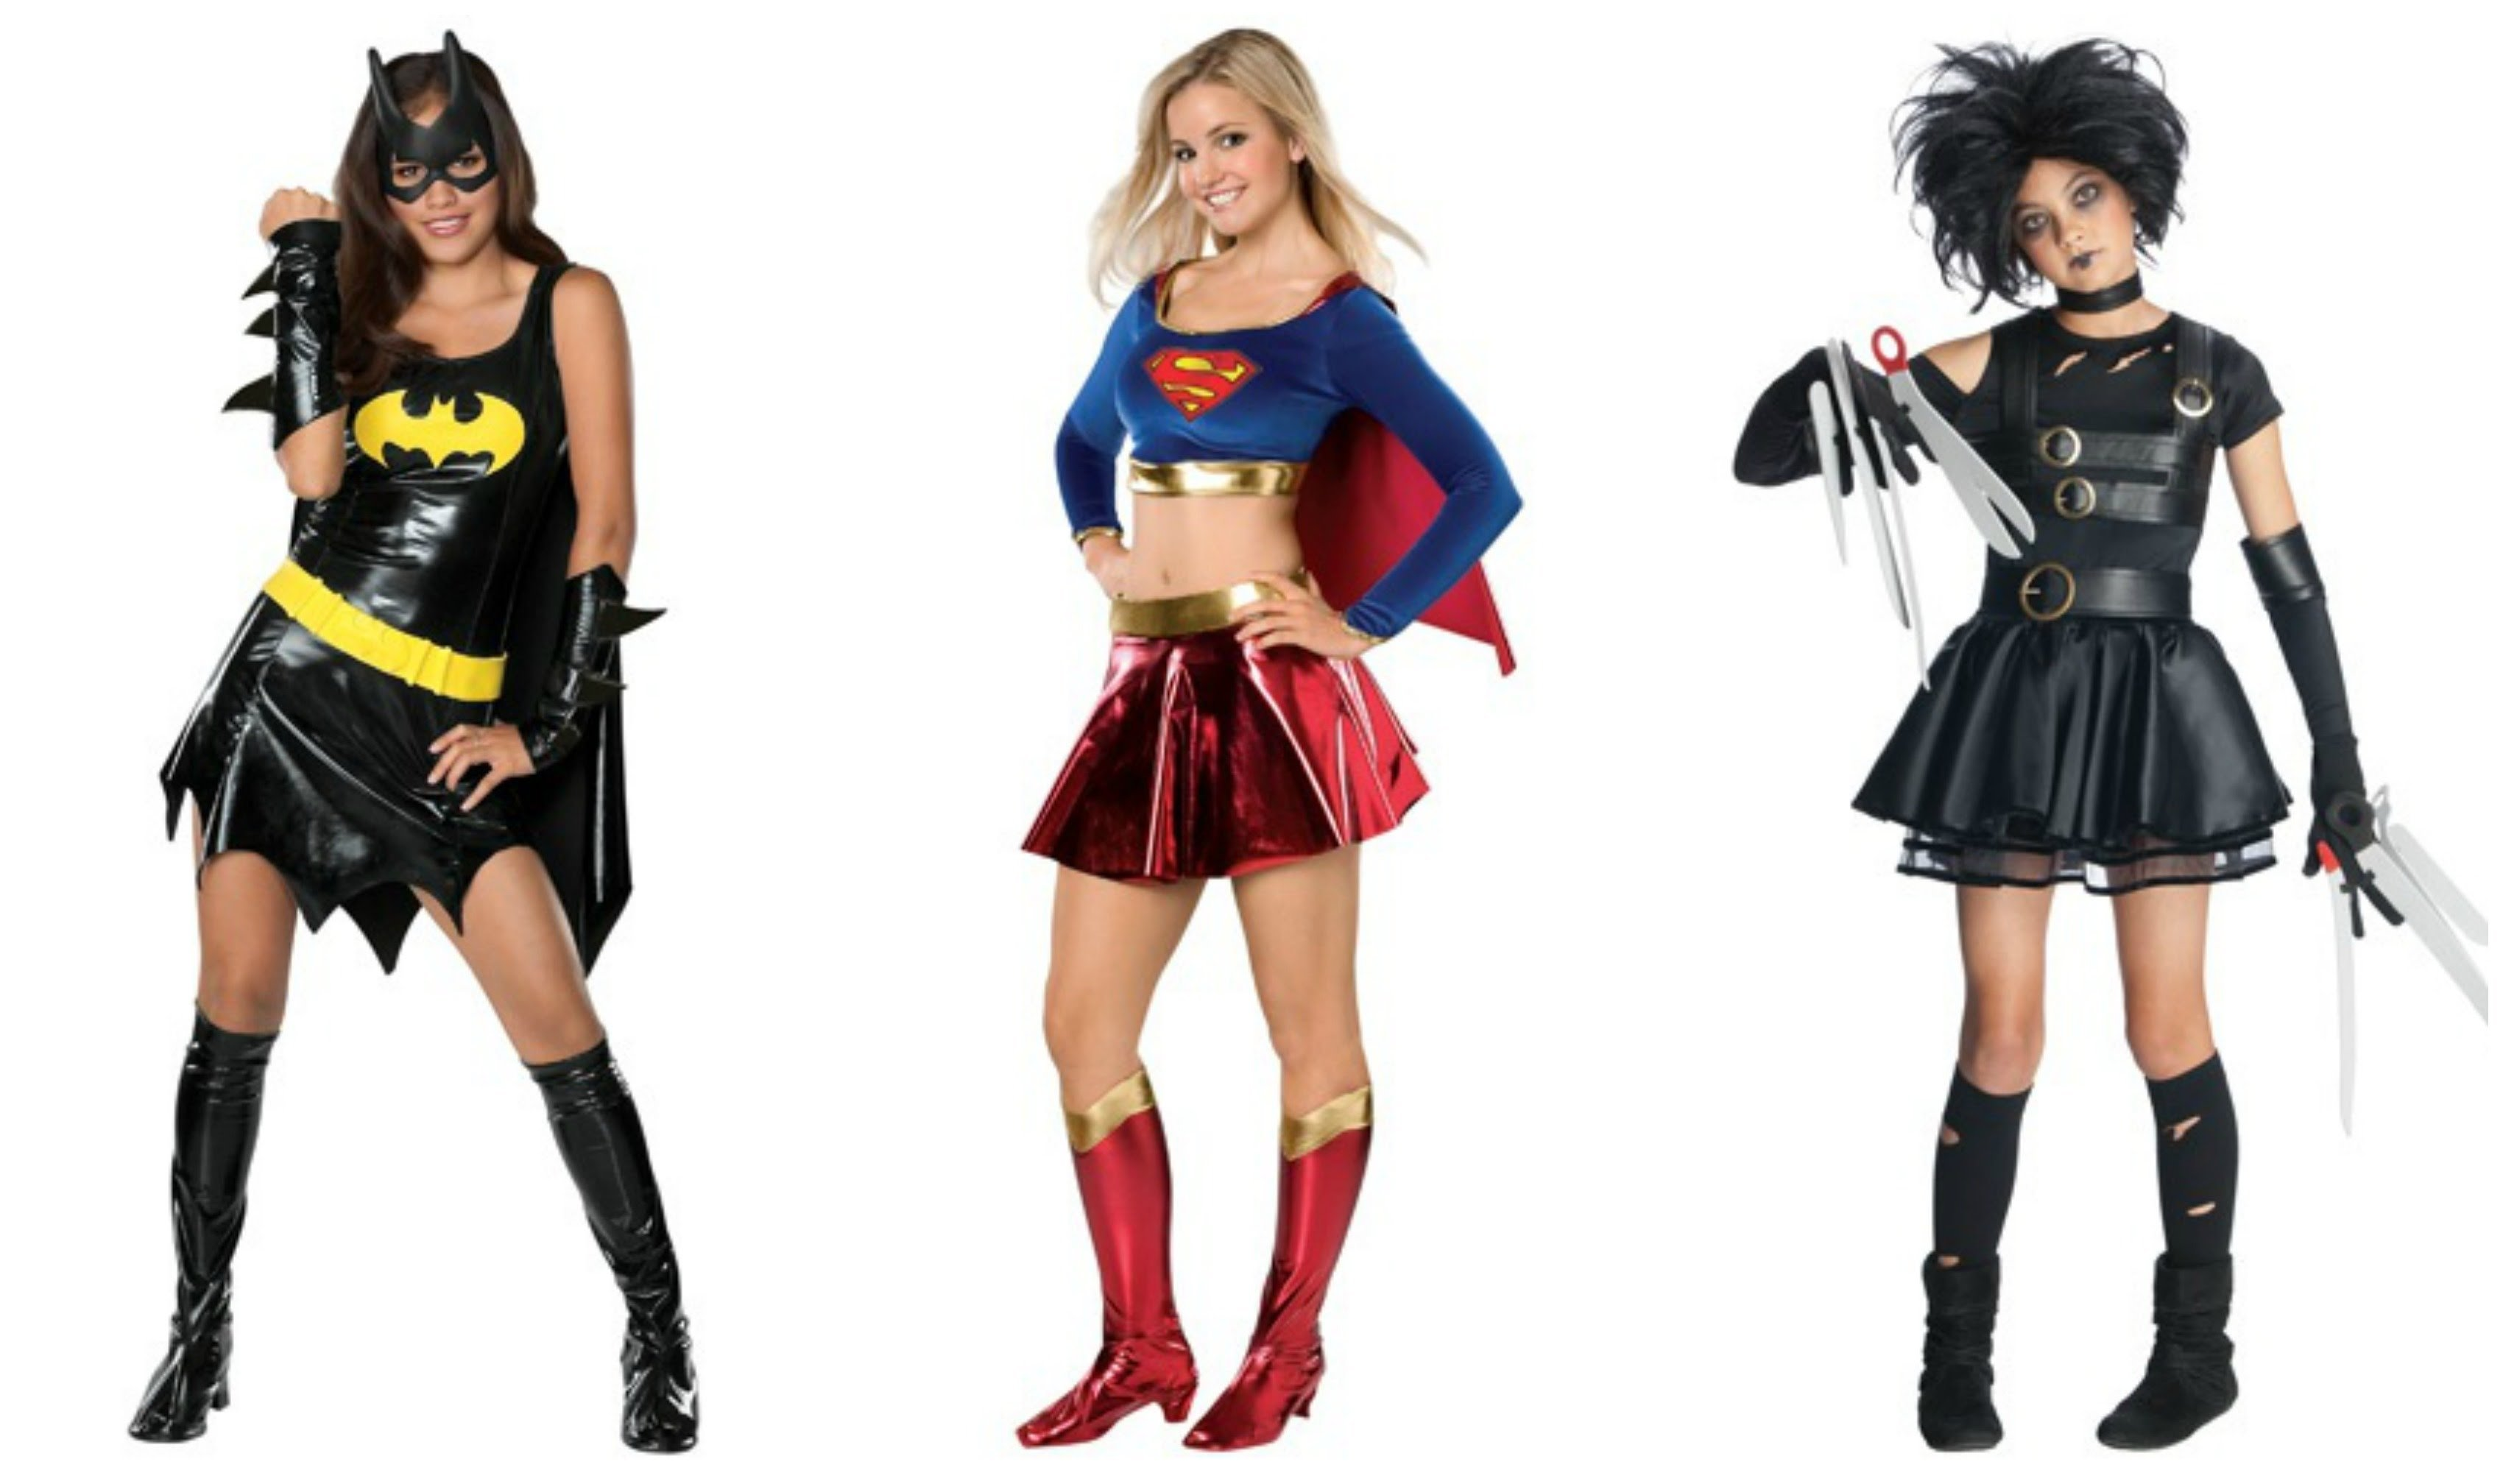 10 beautiful funny female halloween costume ideas halloween costume ideas for teens girls youtube halloween costumes